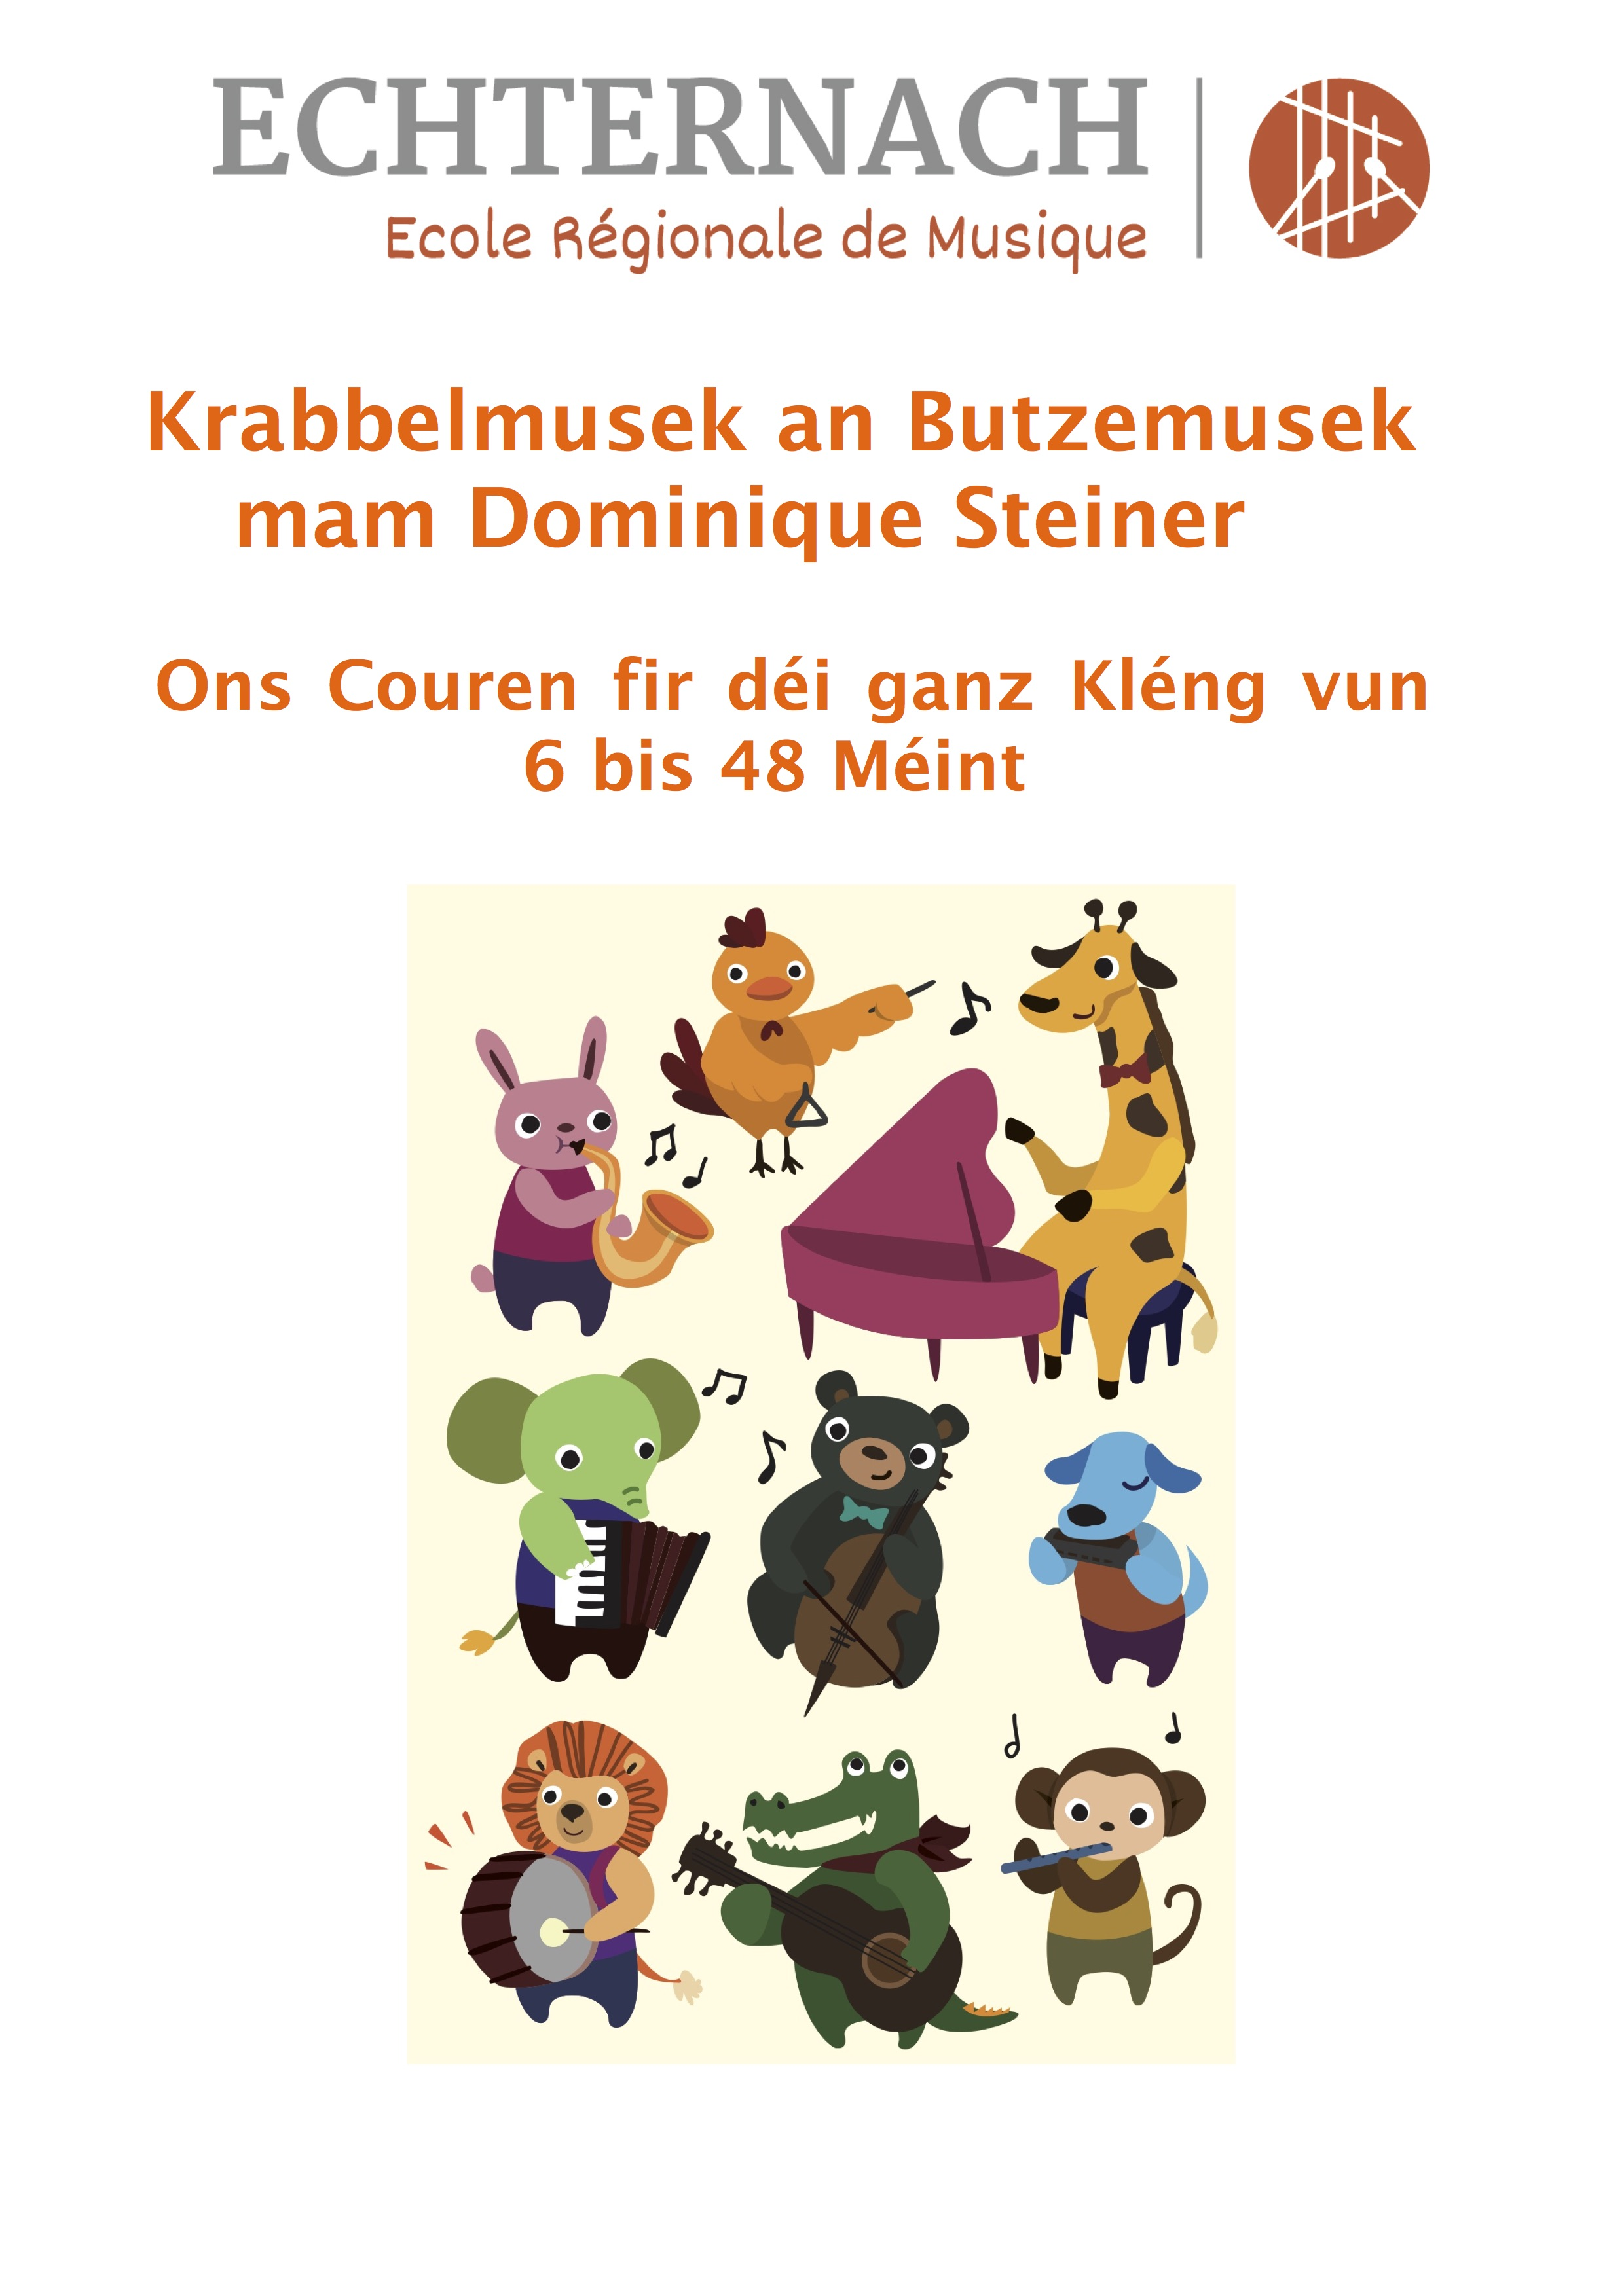 Butzemusek an Krabbelmusek Flyer copy